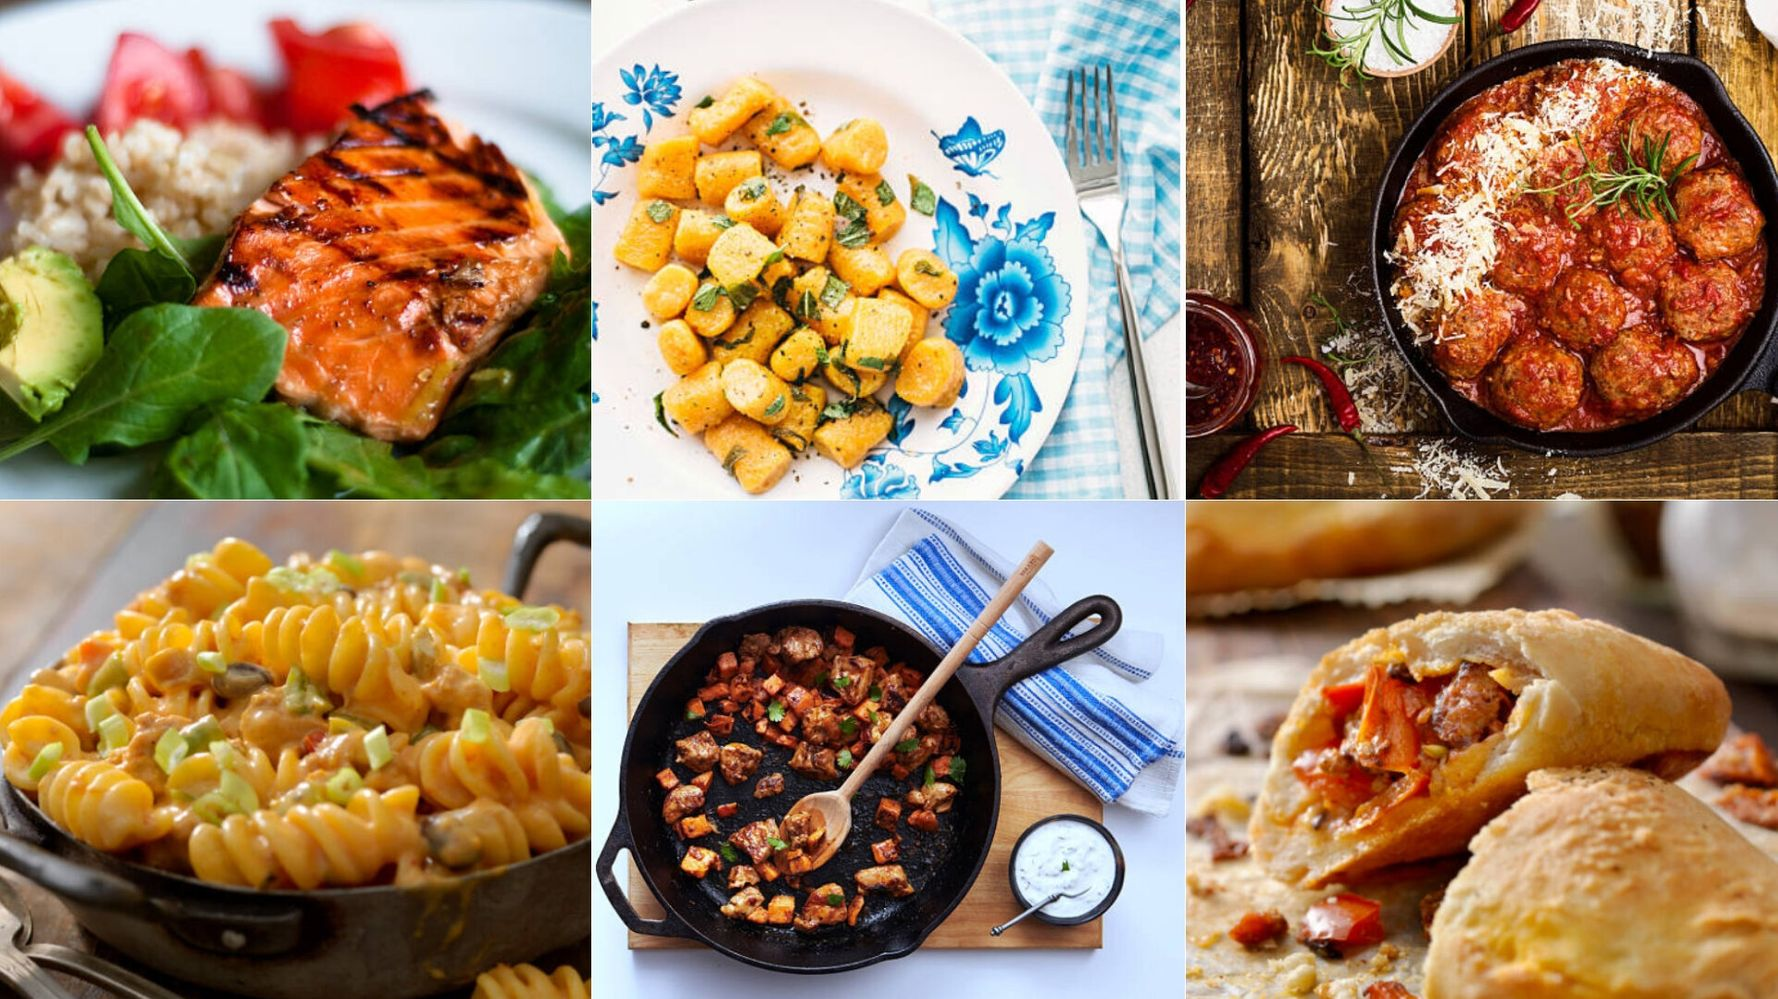 Weekly Meal Plan 6 Kid Friendly Dinner Recipes March 3 8